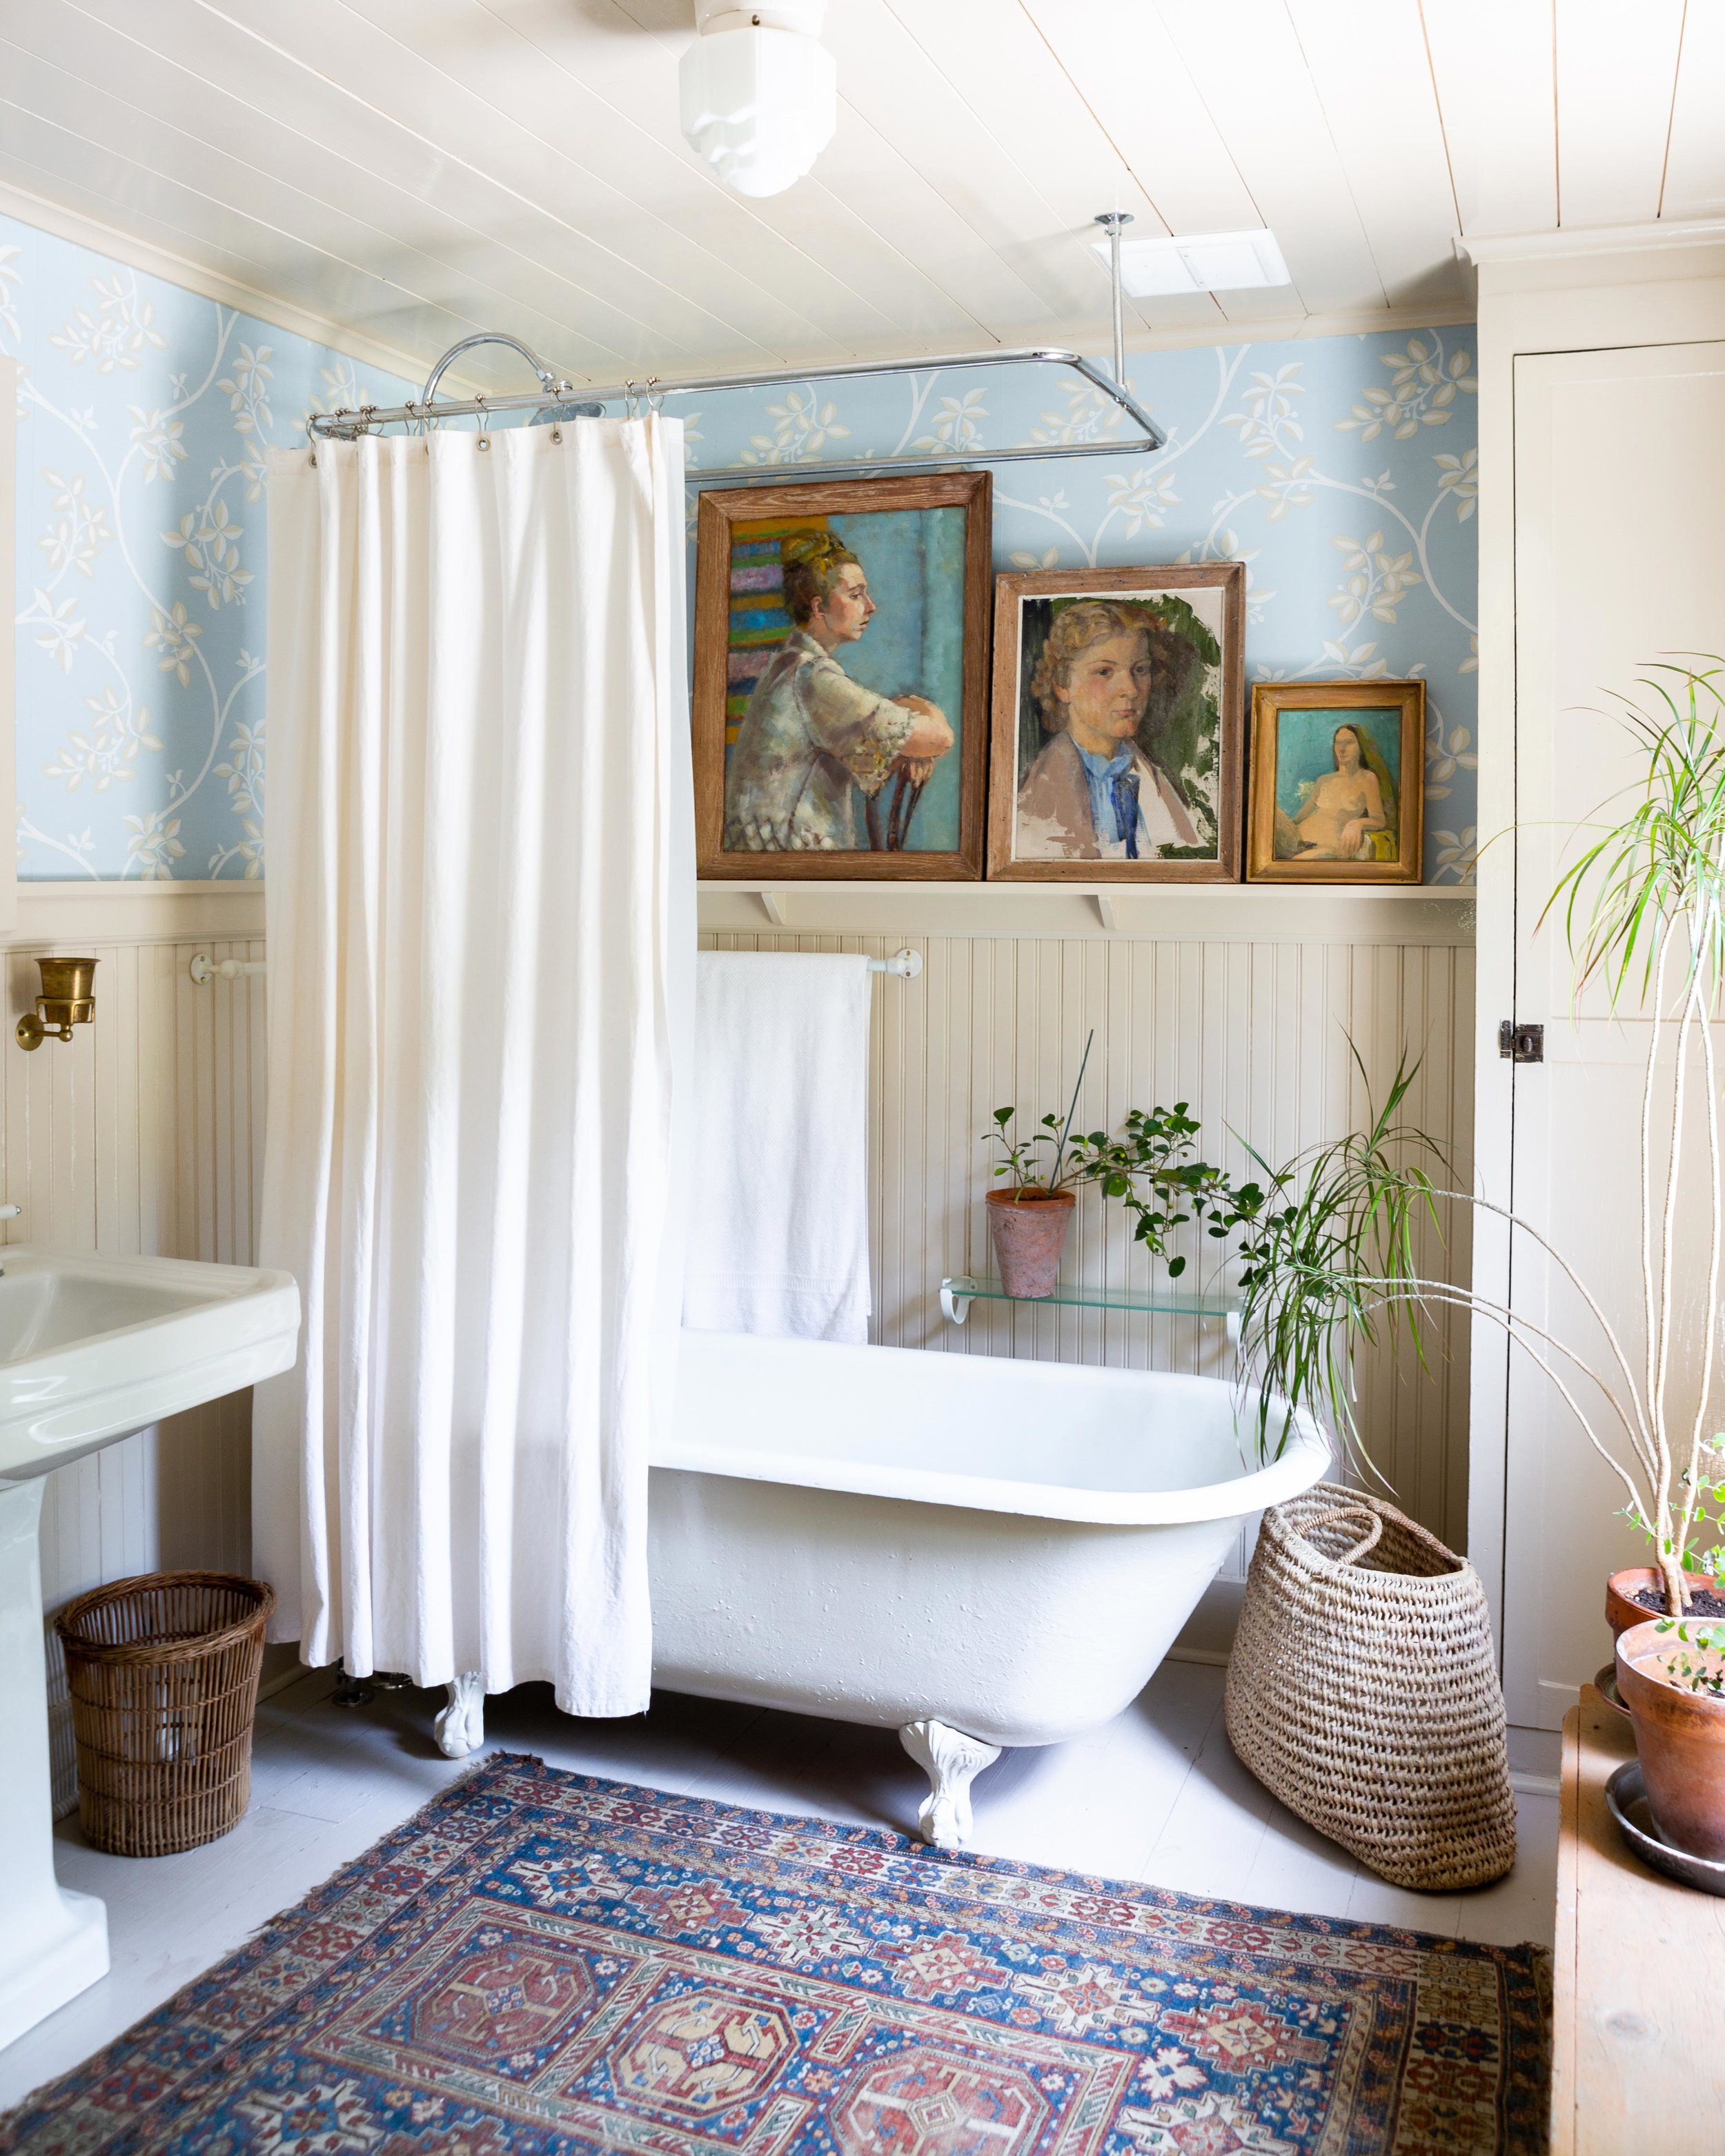 """The redesign of the cottage's bathroom began with an antique floor-to-ceiling cabinet that Prewitt and her husband """"found almost a year before we got the building,"""" she says. """"Drawing on it for inspiration, we sourced the other pieces, like the antique tub and the antique sink. Then I worked with Farrow & Ball, who supplied the wallpaper for me."""""""